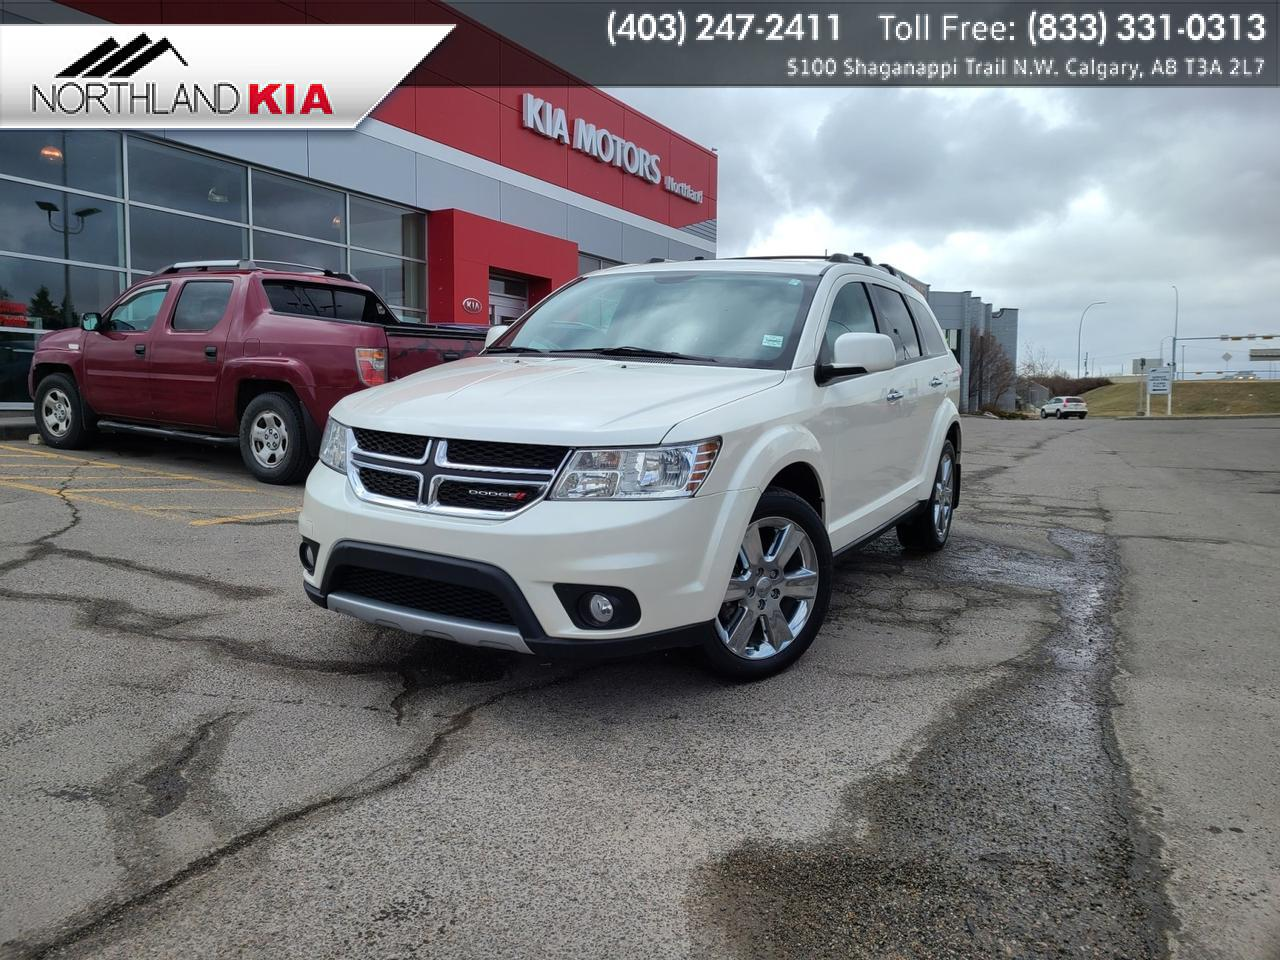 2015 Dodge Journey R/T 7-PASSENGER, DVD PLAYER, HEATED SEATS, BACKUP CAMERA